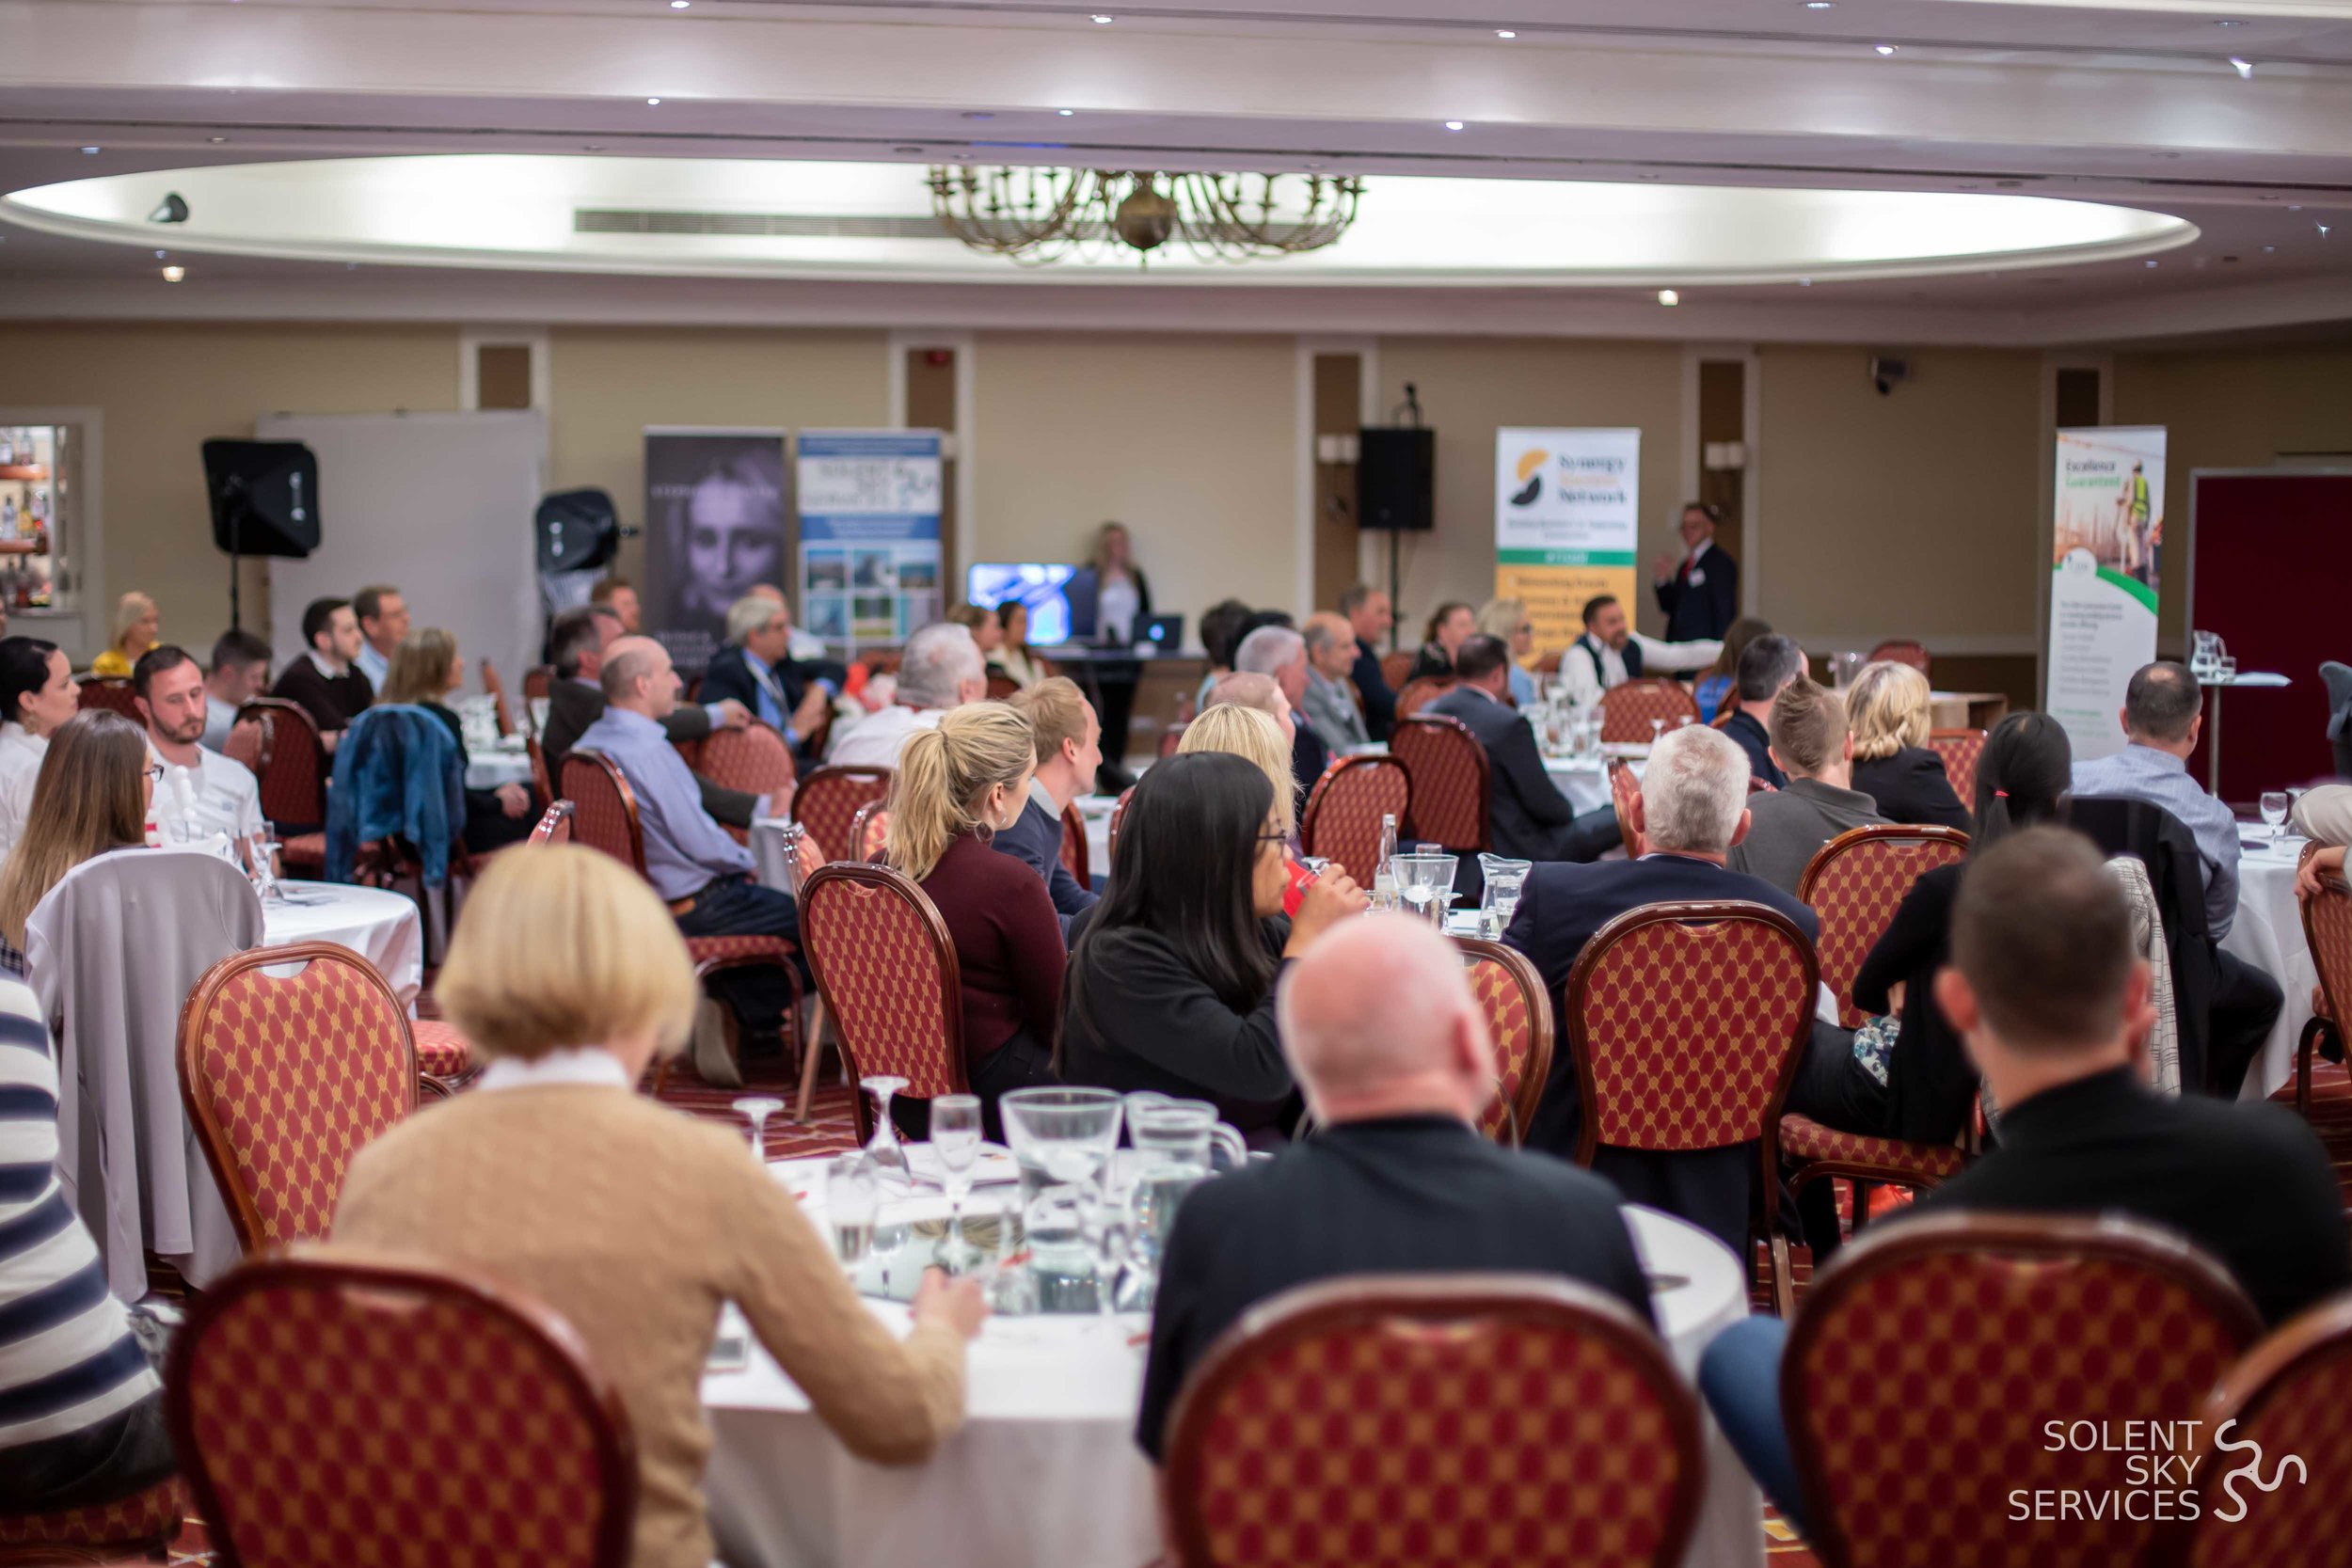 Synergy Success Networking Event #2 - Solent Sky Services-61.JPG